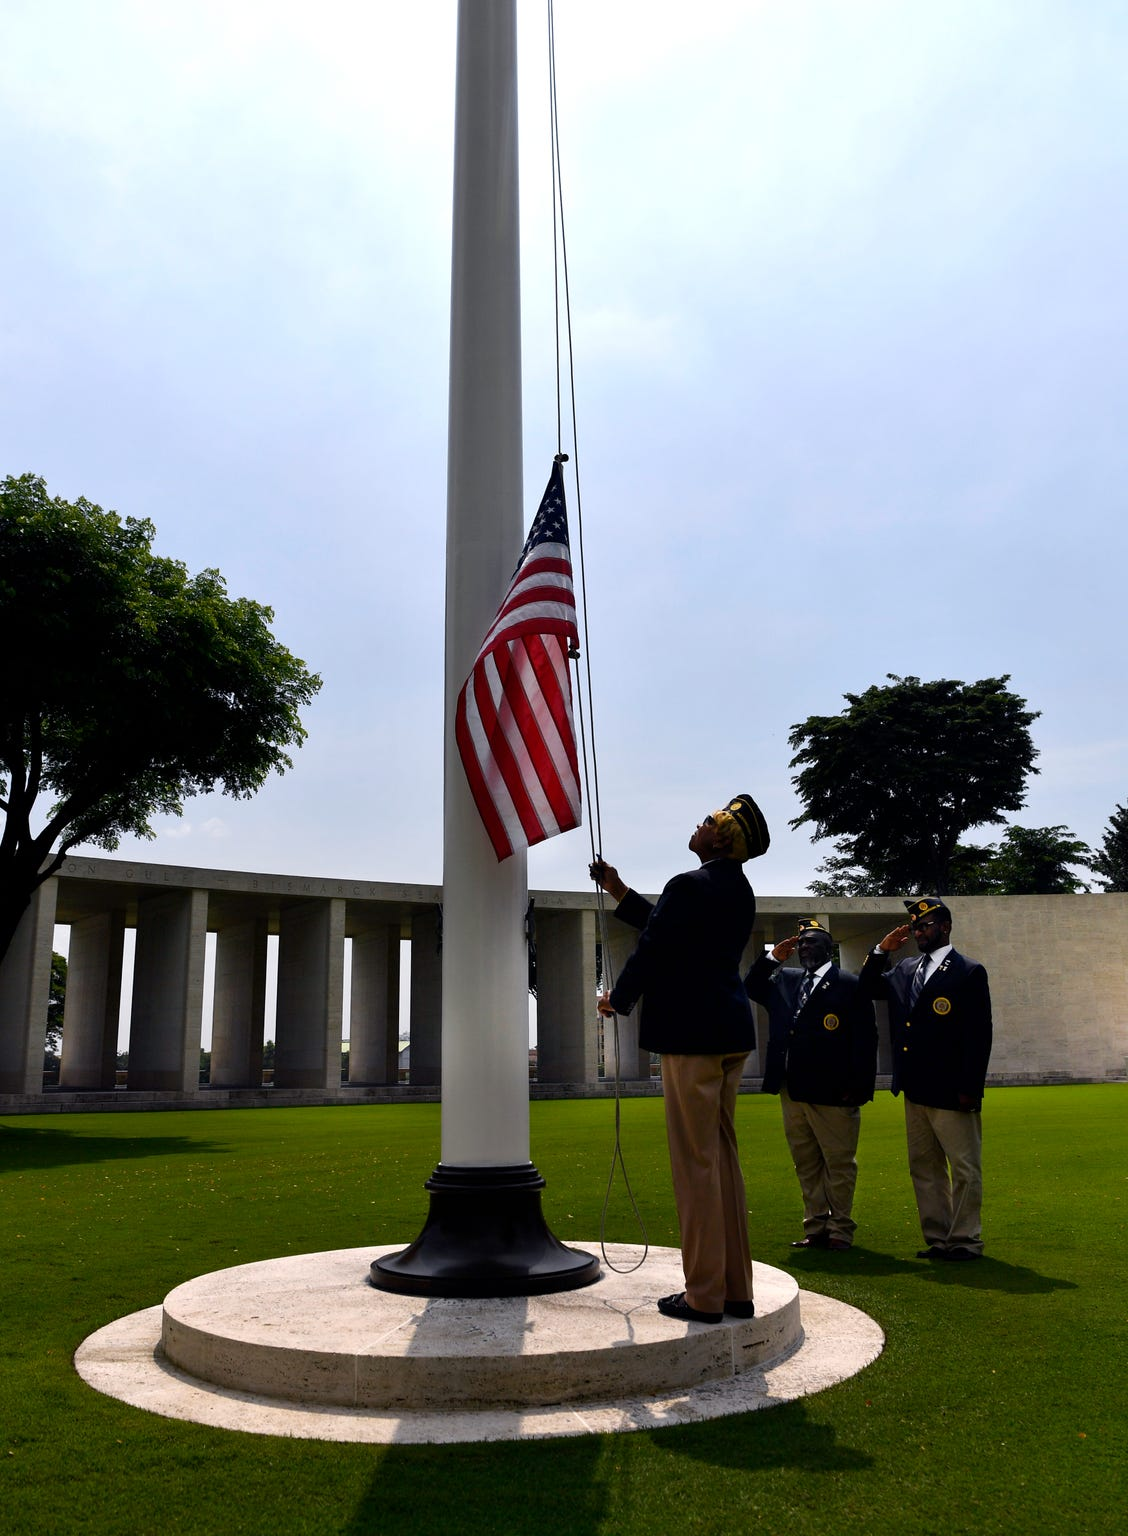 Carolyn Lewis lowers a flag after flying it over Manila American Cemetery on Friday. She was part of a small group from McDonough, Georgia, that came to visit the grave of Willie B. Hatcher, the namesake of their VFW Post 516, and to attend the dedication of the cemetery's new Visitor Center.